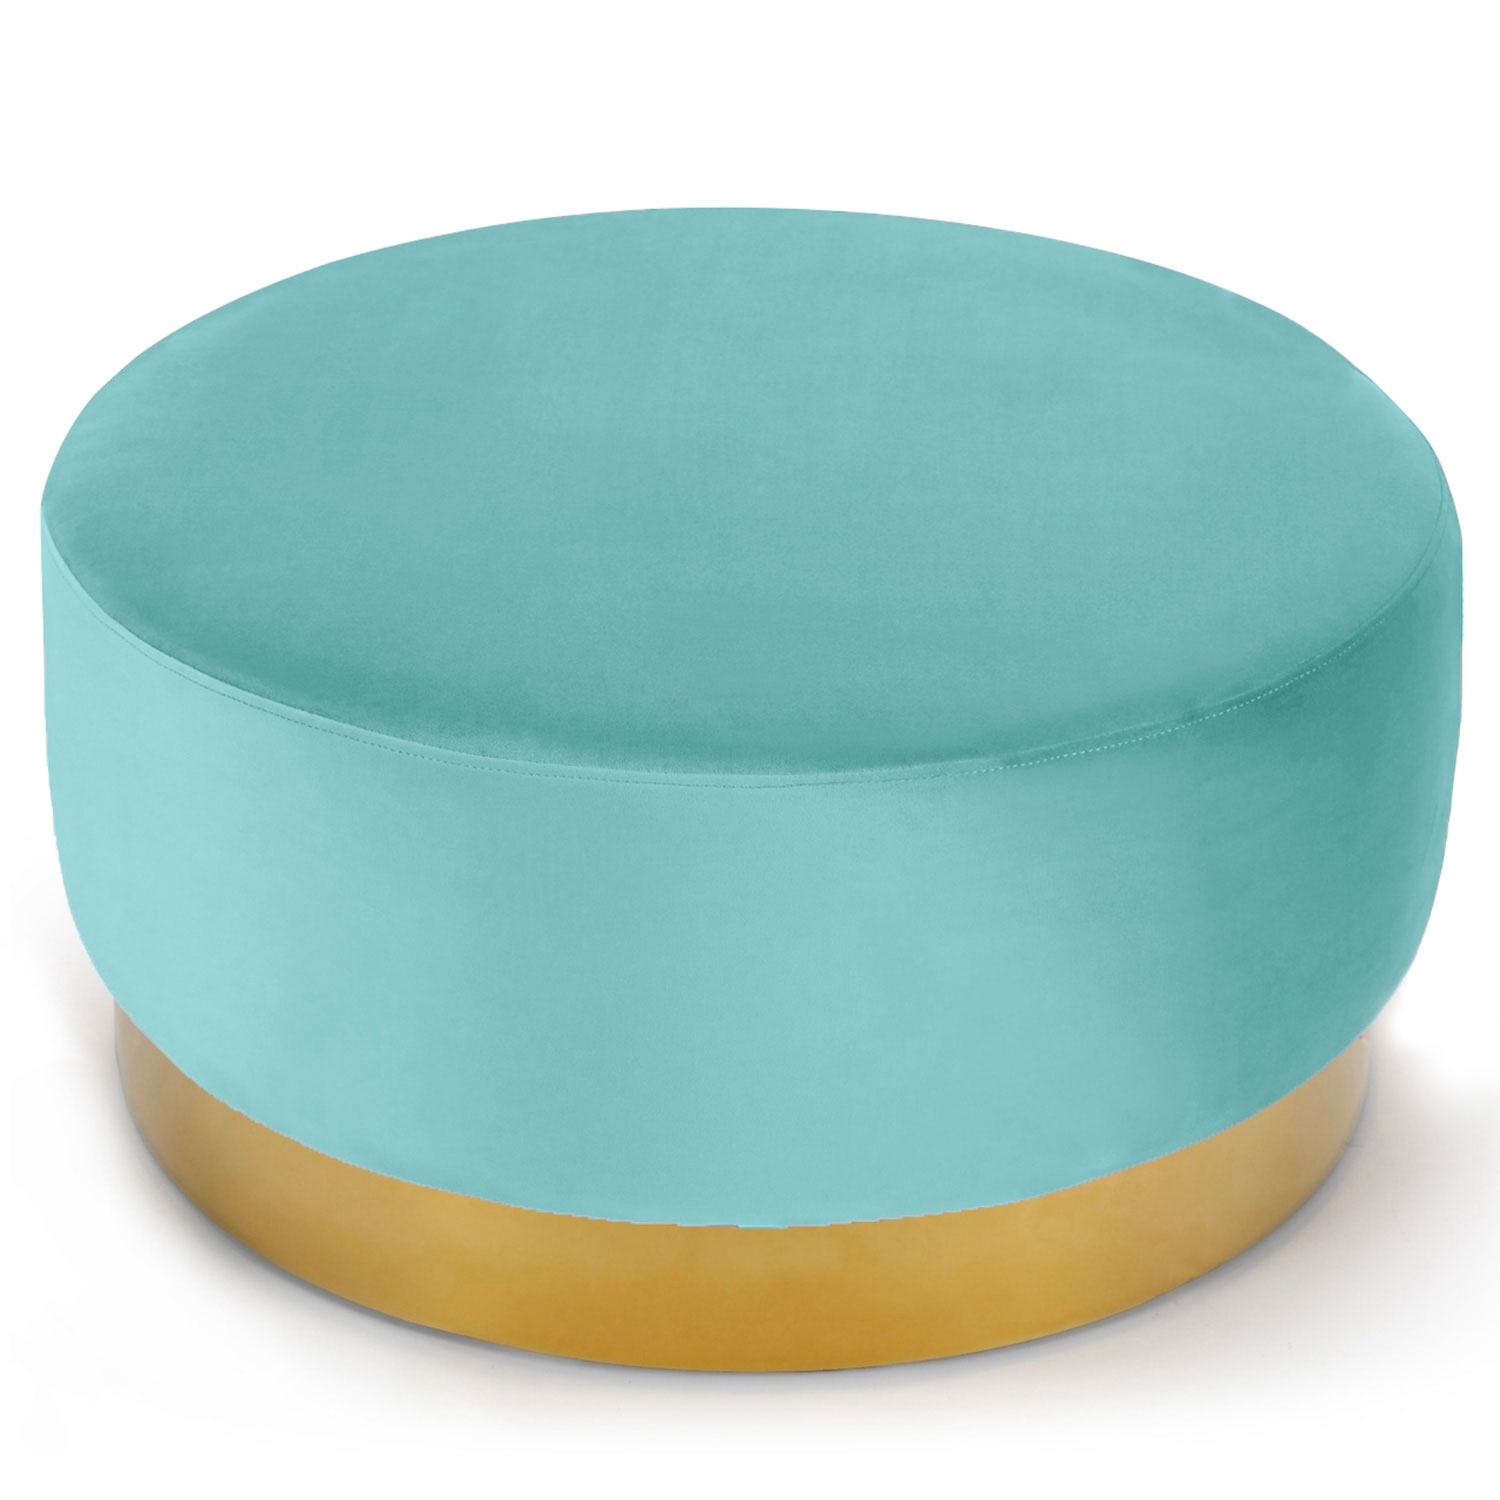 Pouf Rond Daisy Velours Menthe Pied Or